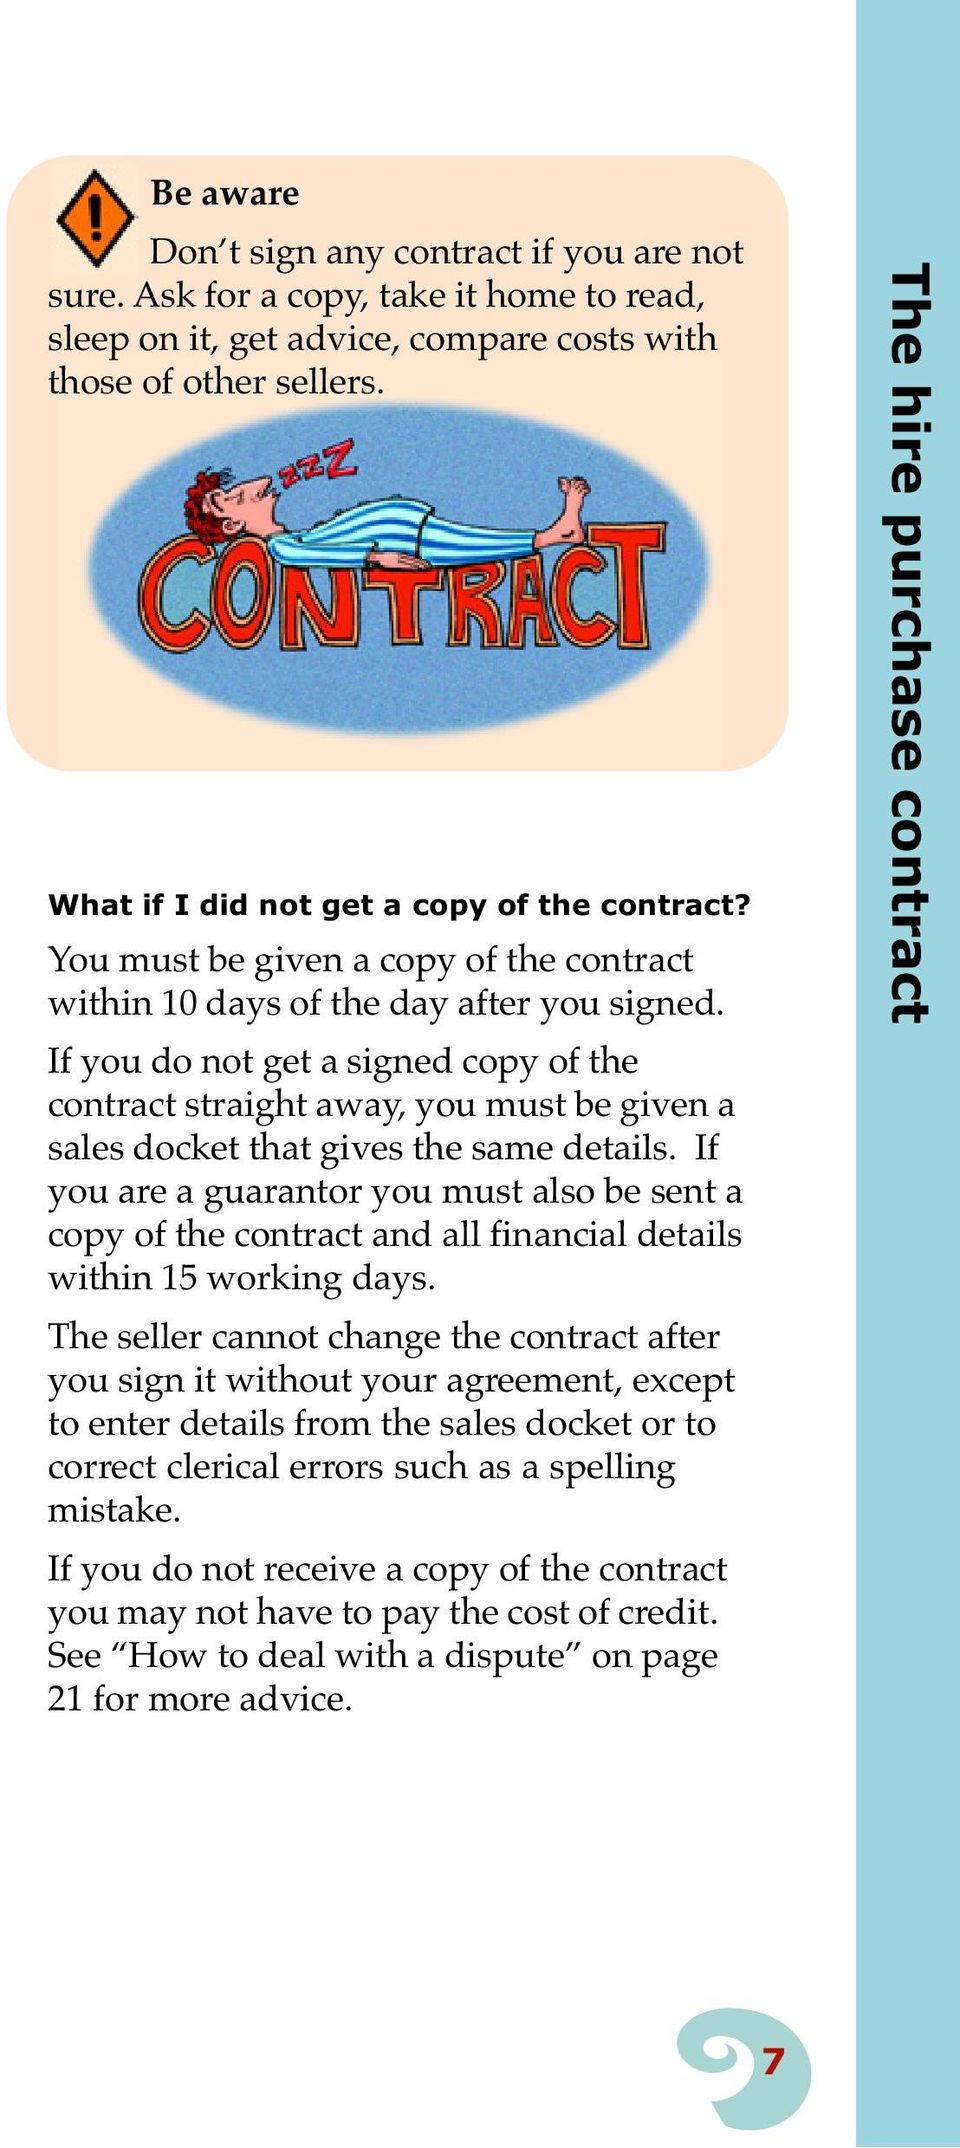 If you do not get a signed copy of the contract straight away, you must be given a sales docket that gives the same details.